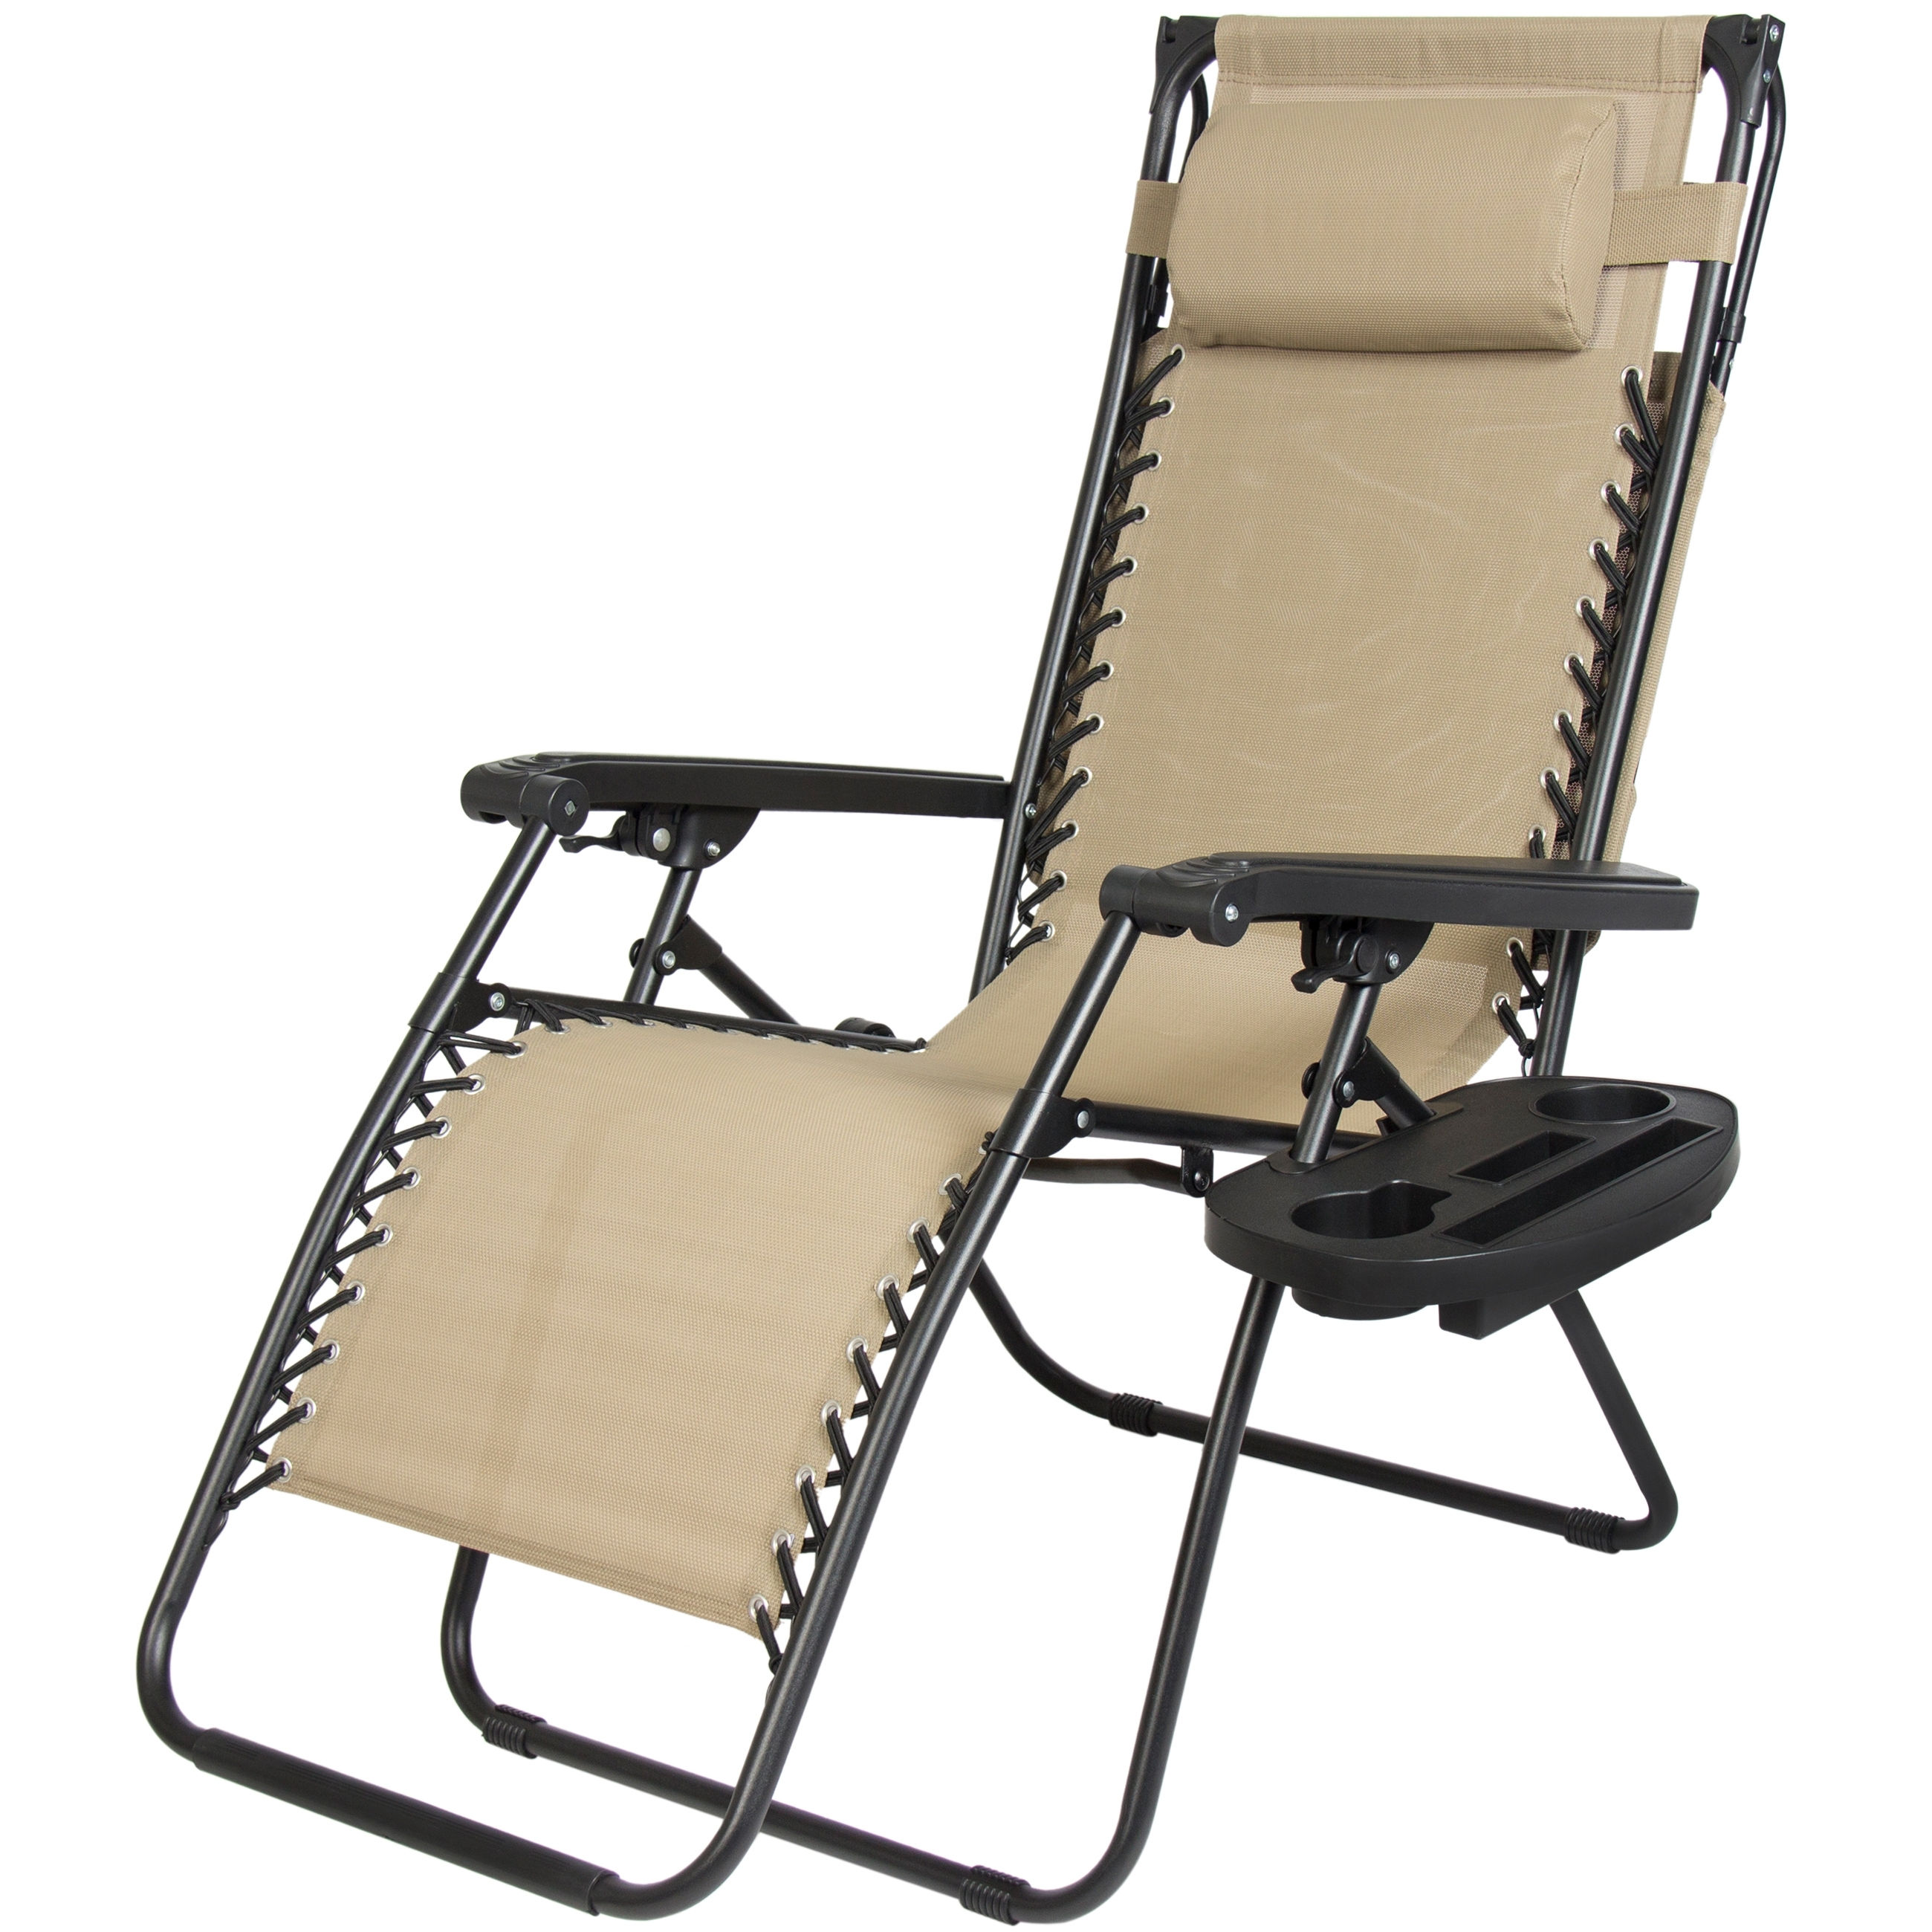 Preferred Lounge Chair : Outdoor Lounge Chairs With Wheels Patio Furniture Throughout Folding Chaise Lounge Lawn Chairs (View 7 of 15)